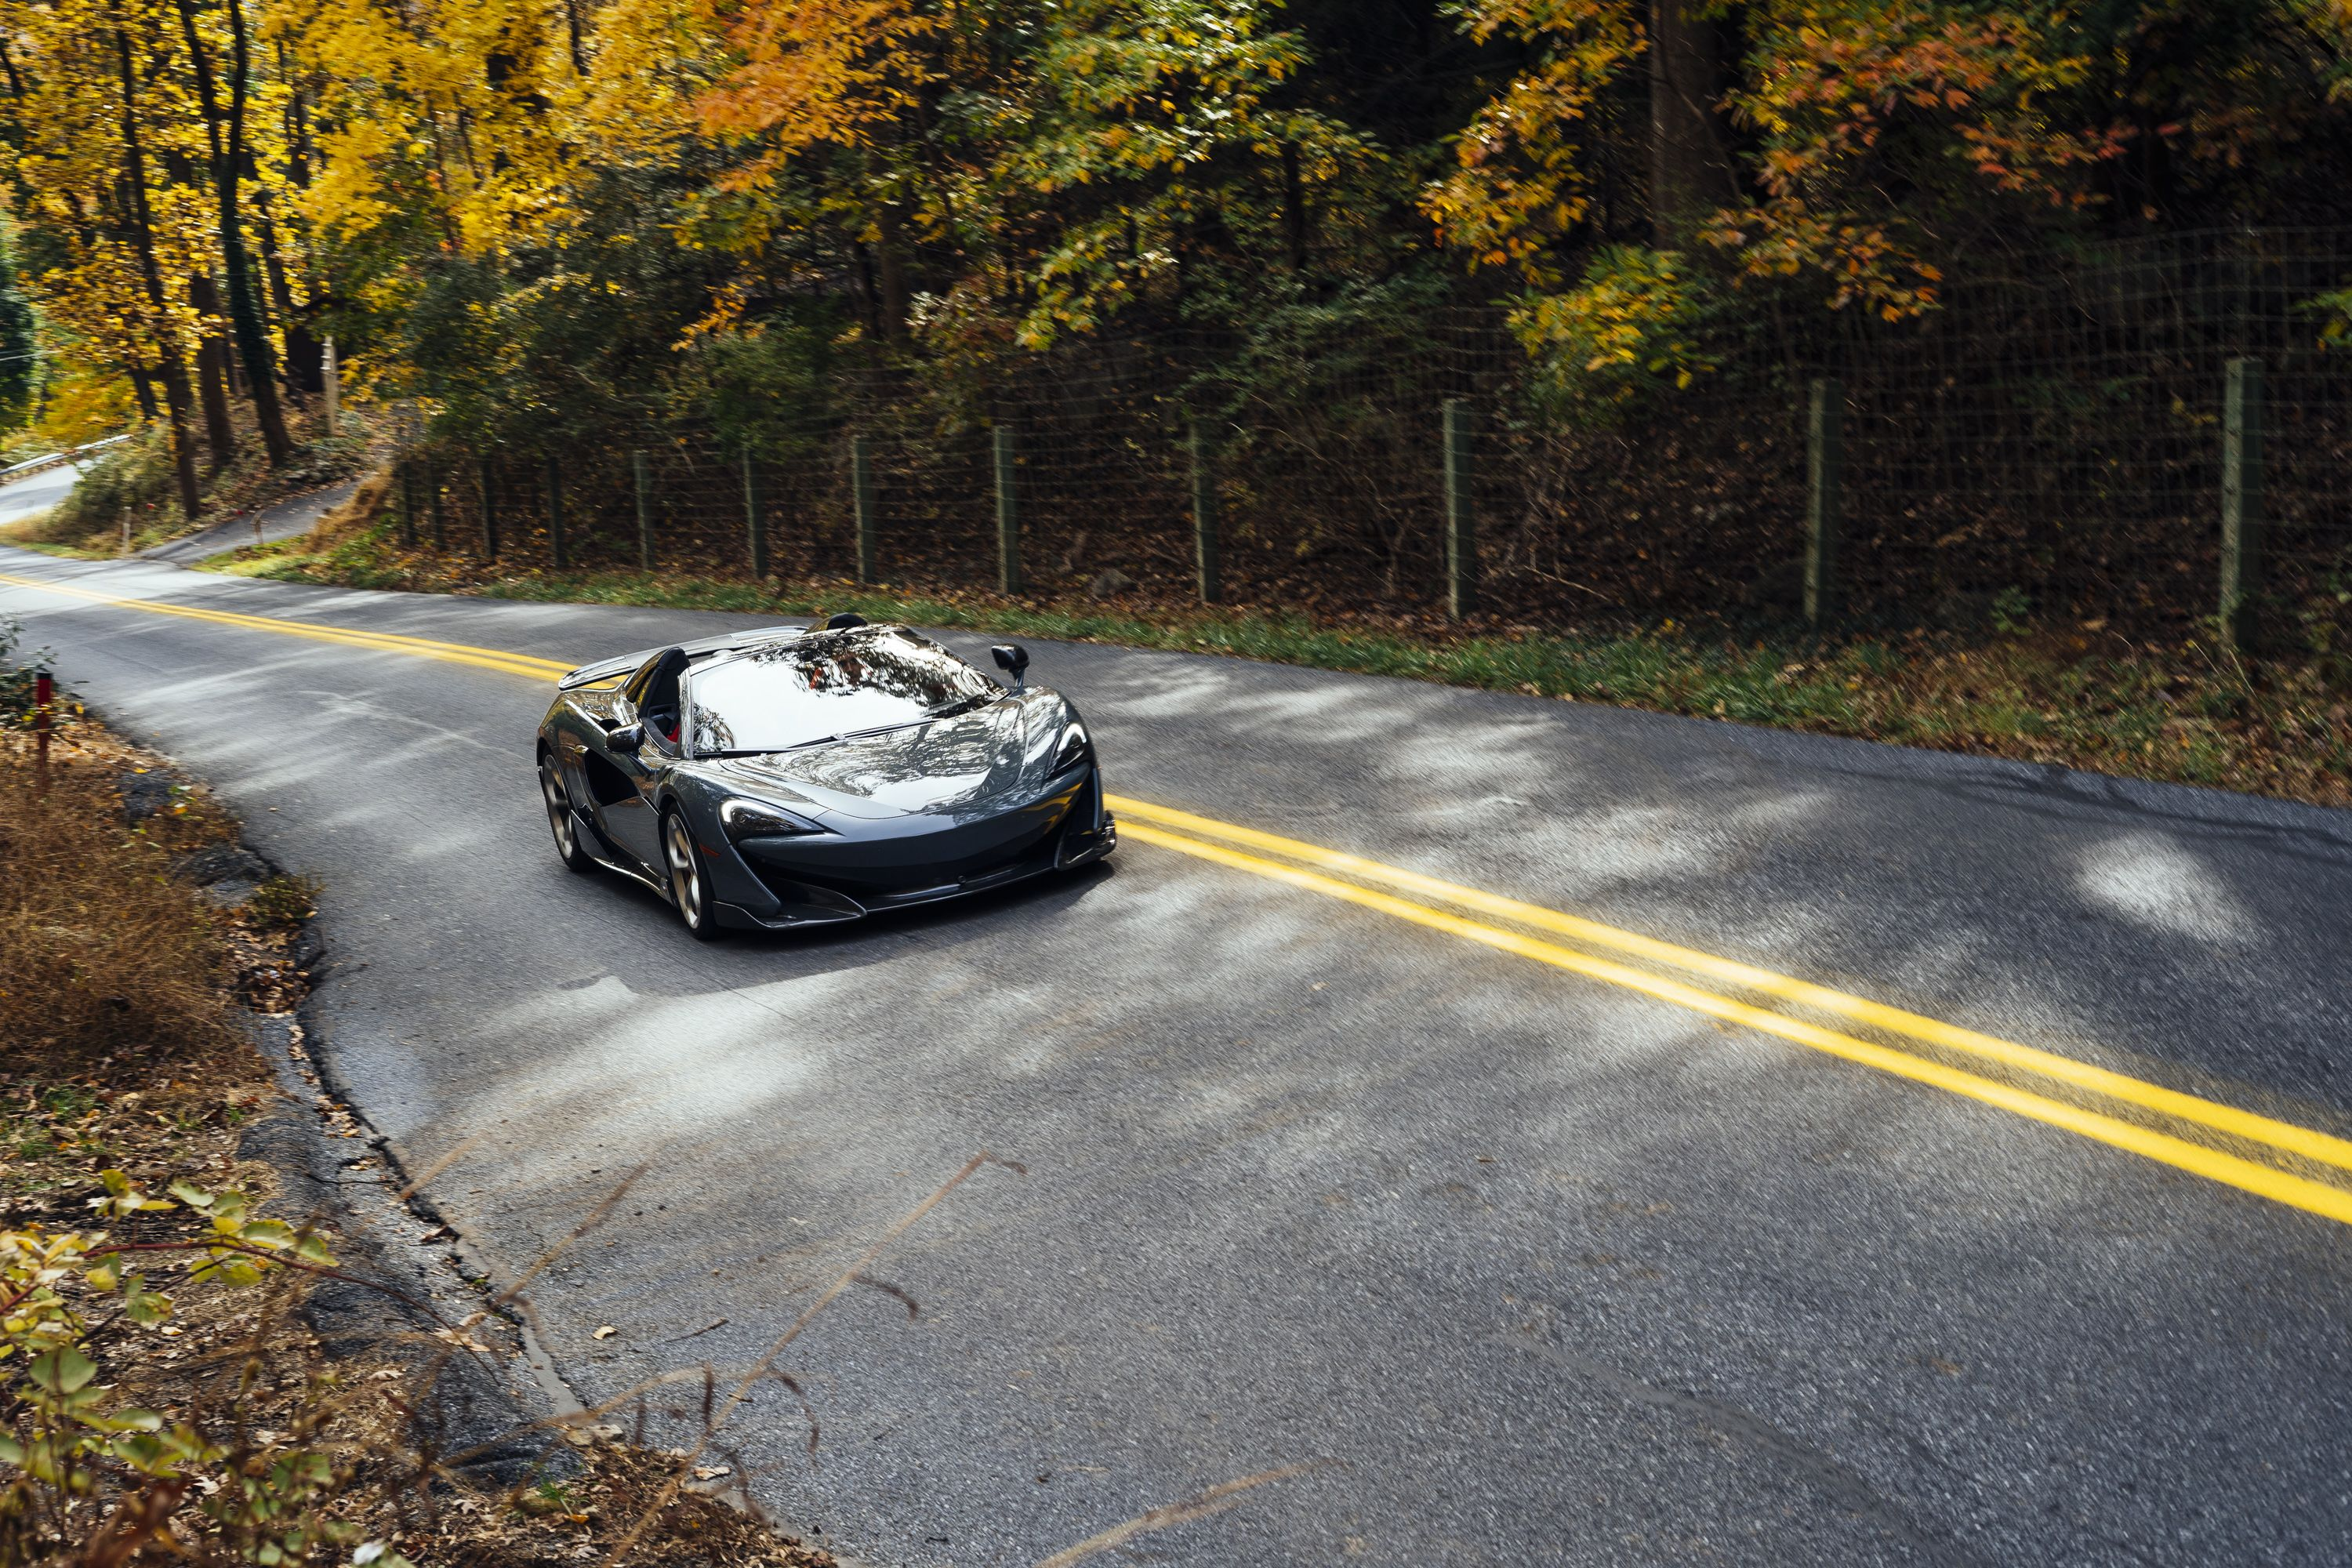 On a Supercar, the Cameras Are There To Make You Go Faster